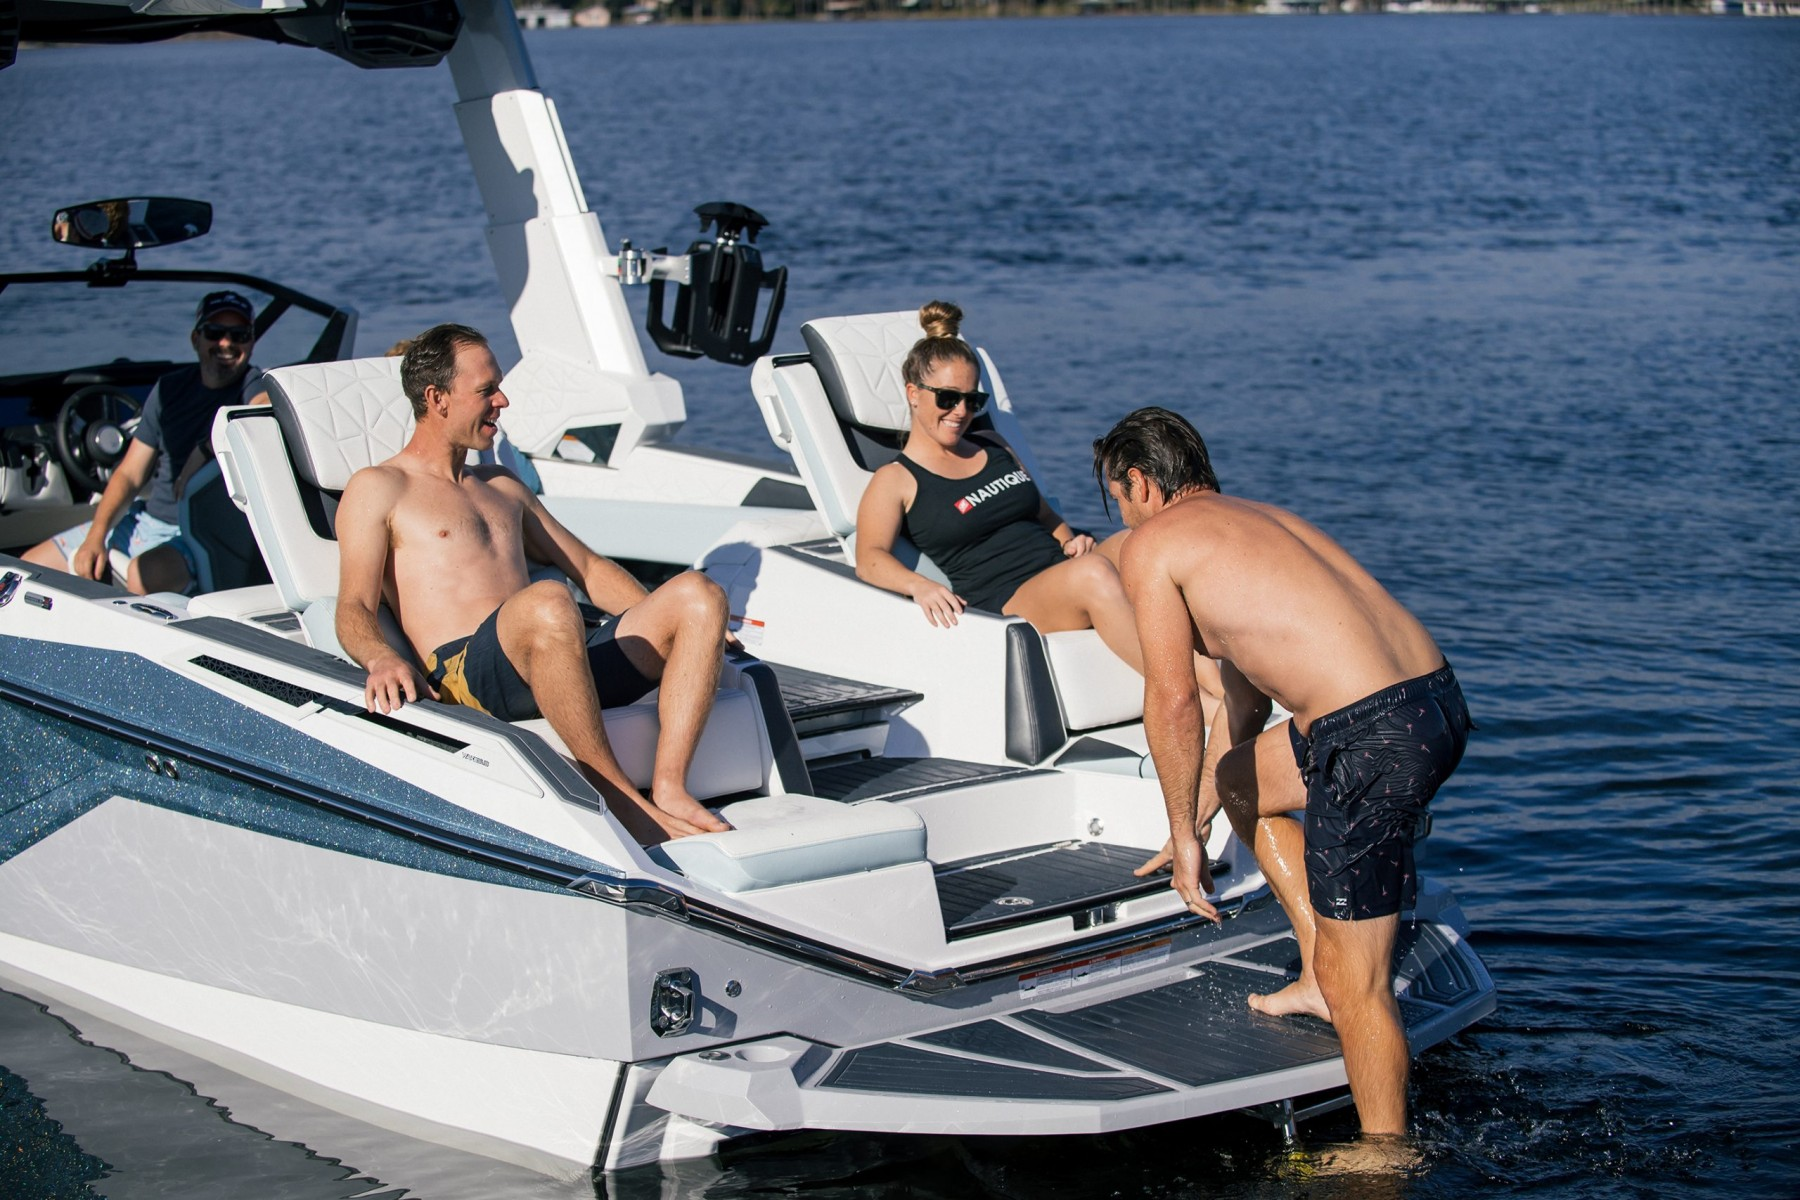 Convertible Transom Seats of the 2022 Nautique G25 Paragon Wake Boat